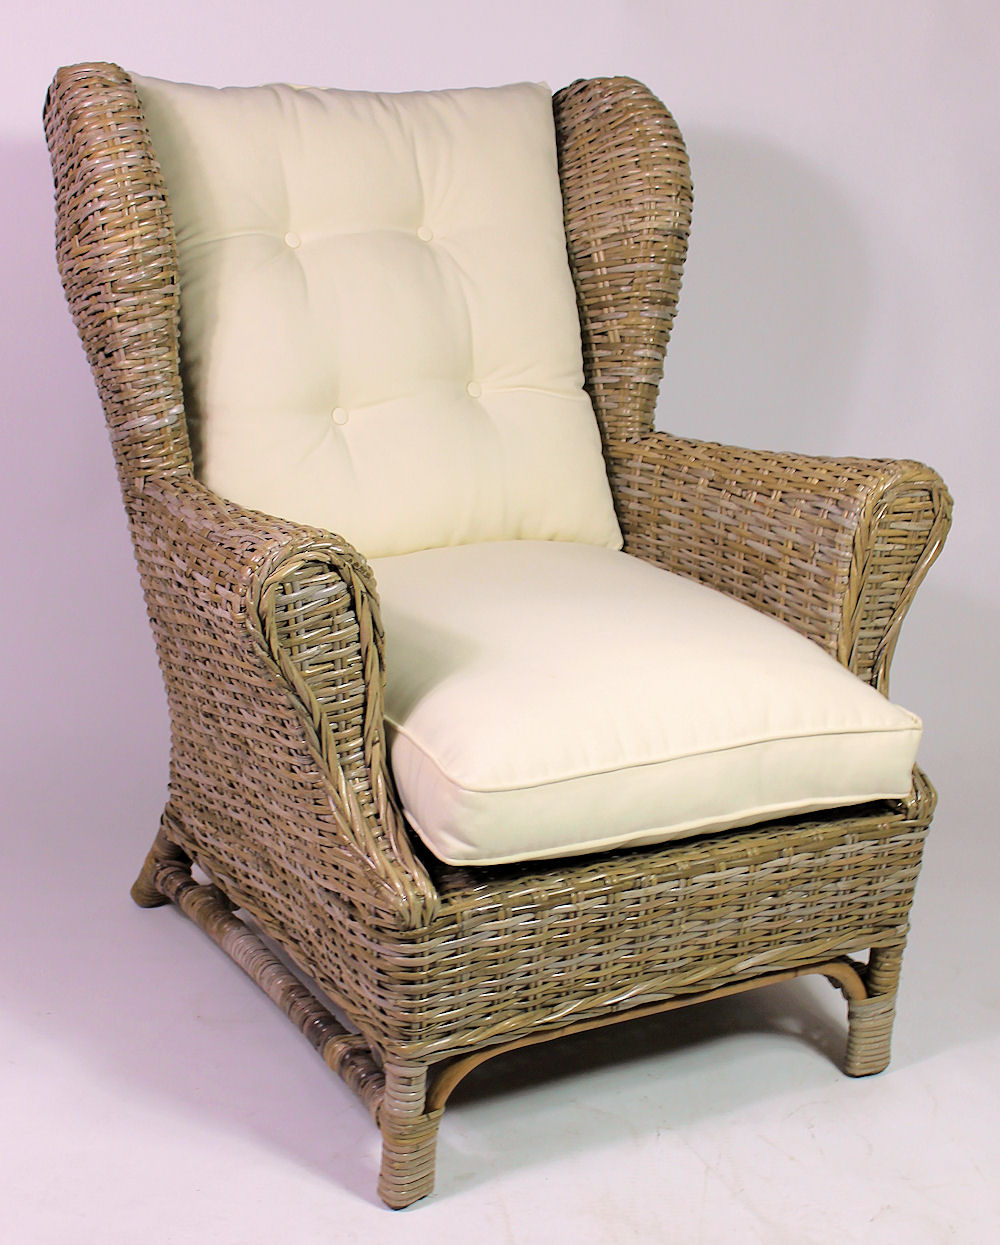 King Chair Sessel Rattani De Rattan Ohrensessel King Chair Rattansessel